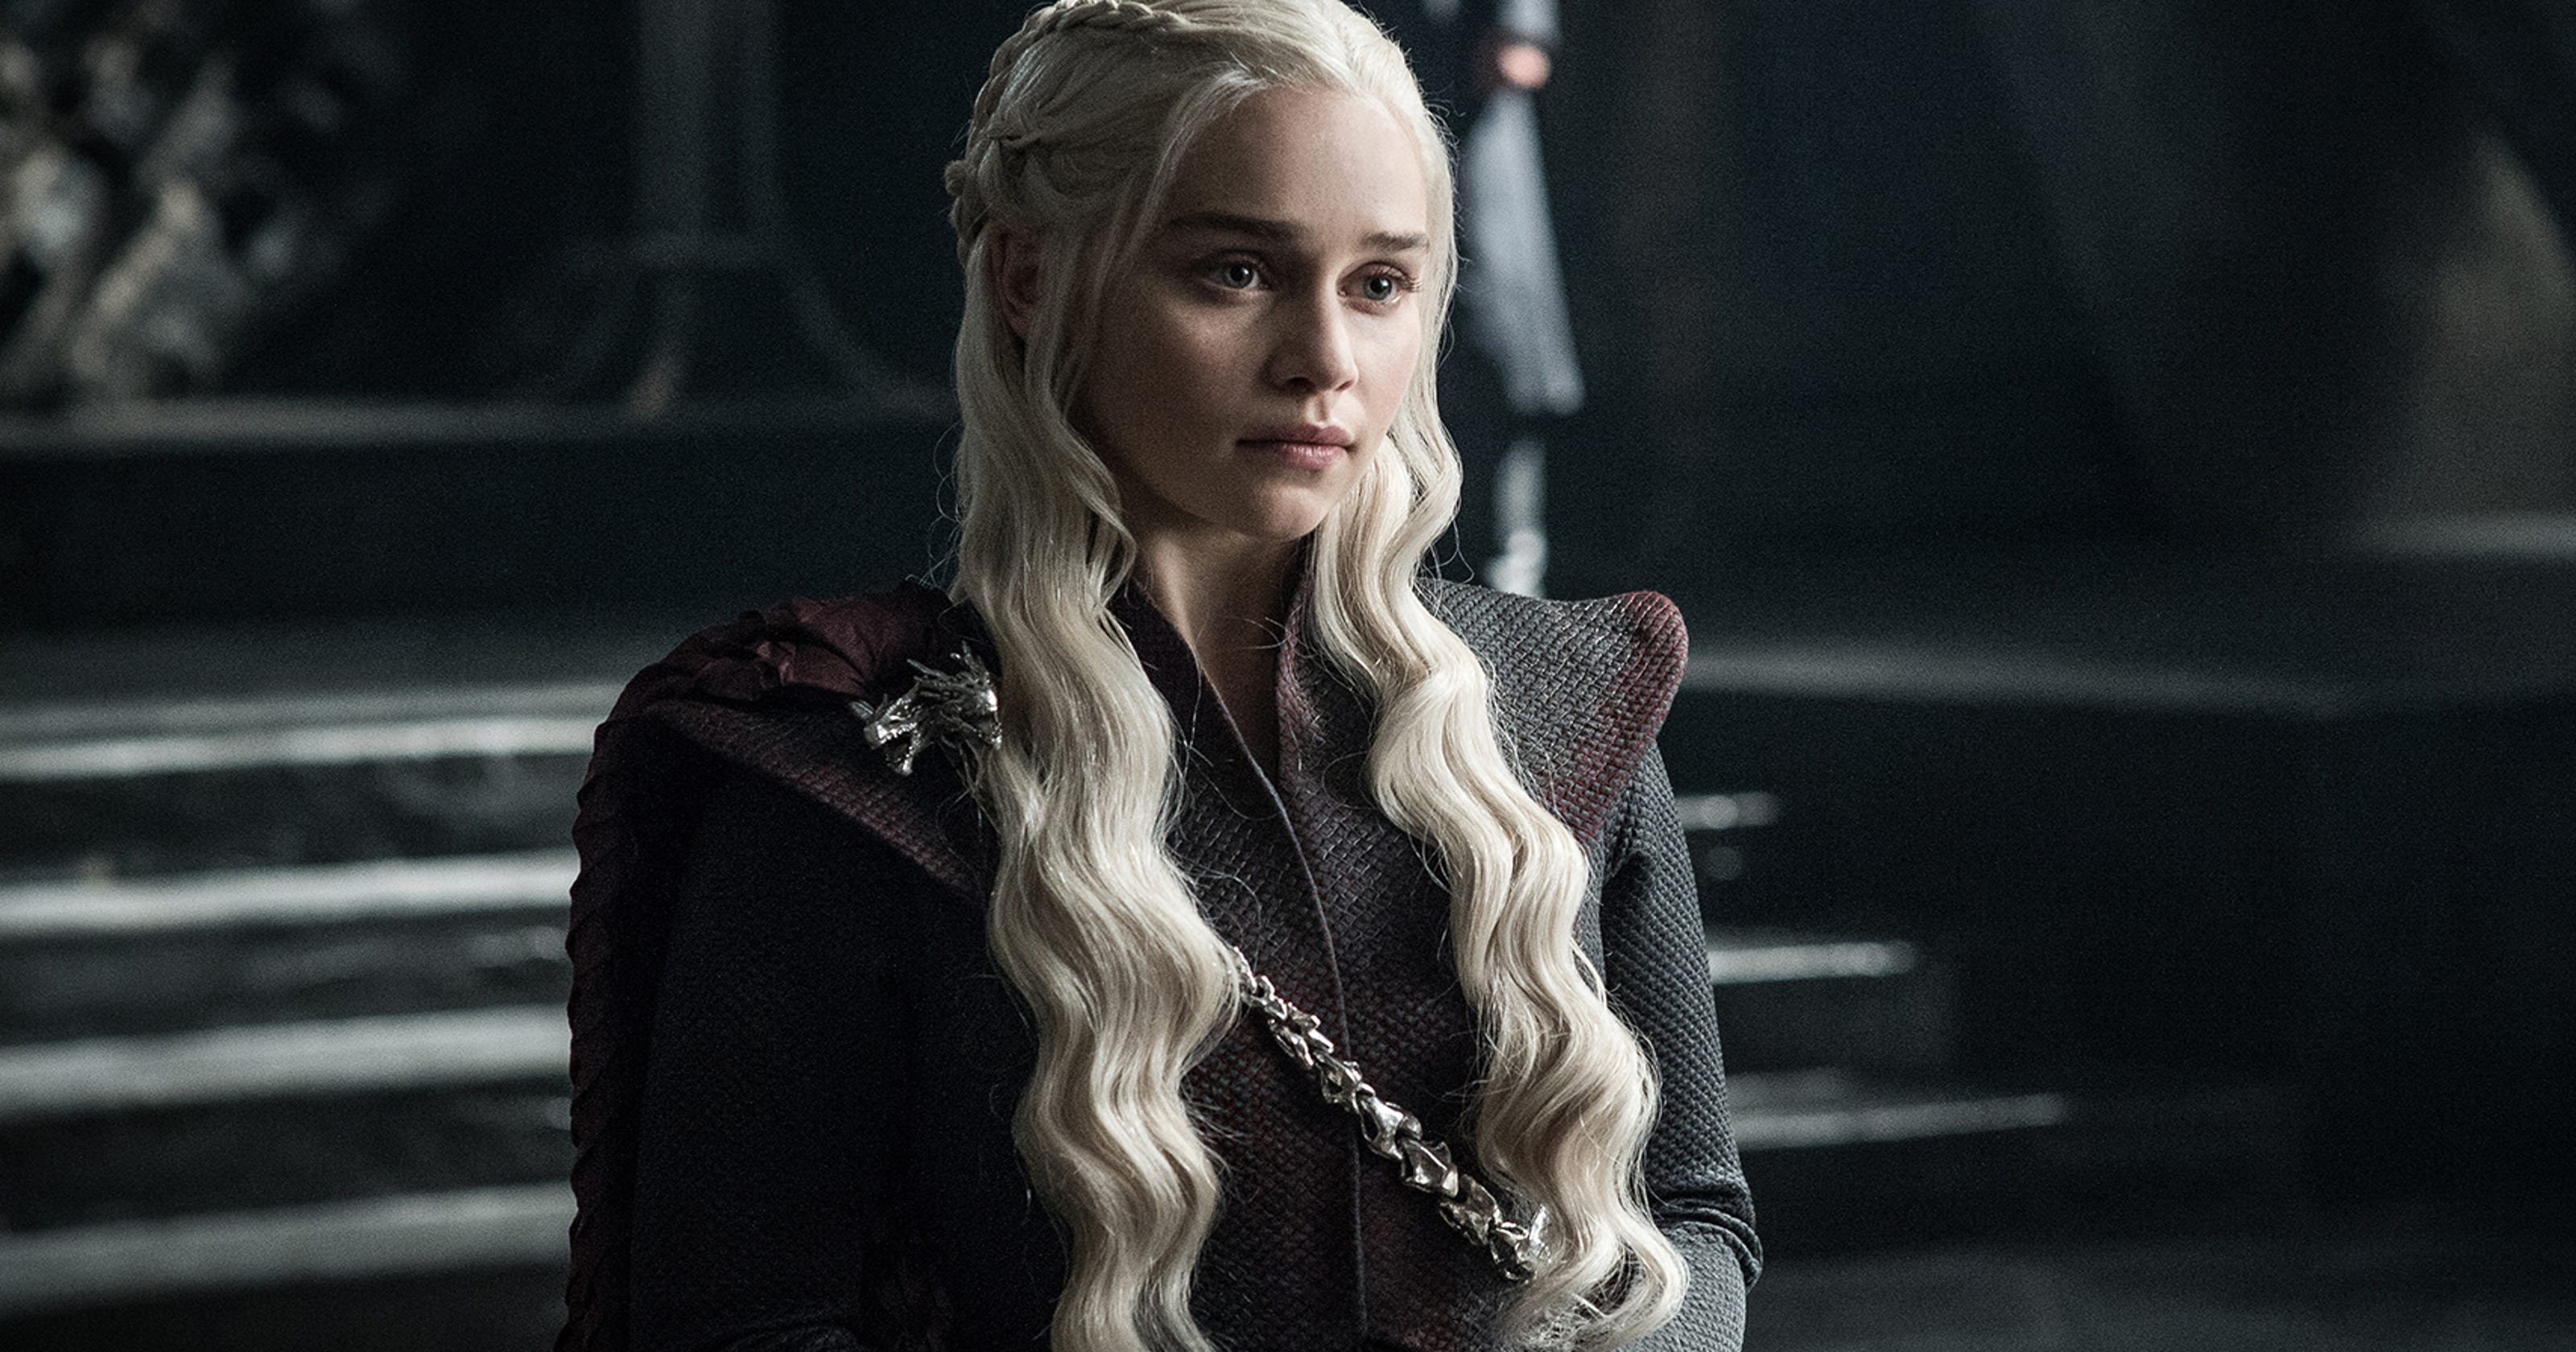 'Game of Thrones' star Emilia Clarke survived 2 aneurysms between seasons of hit show